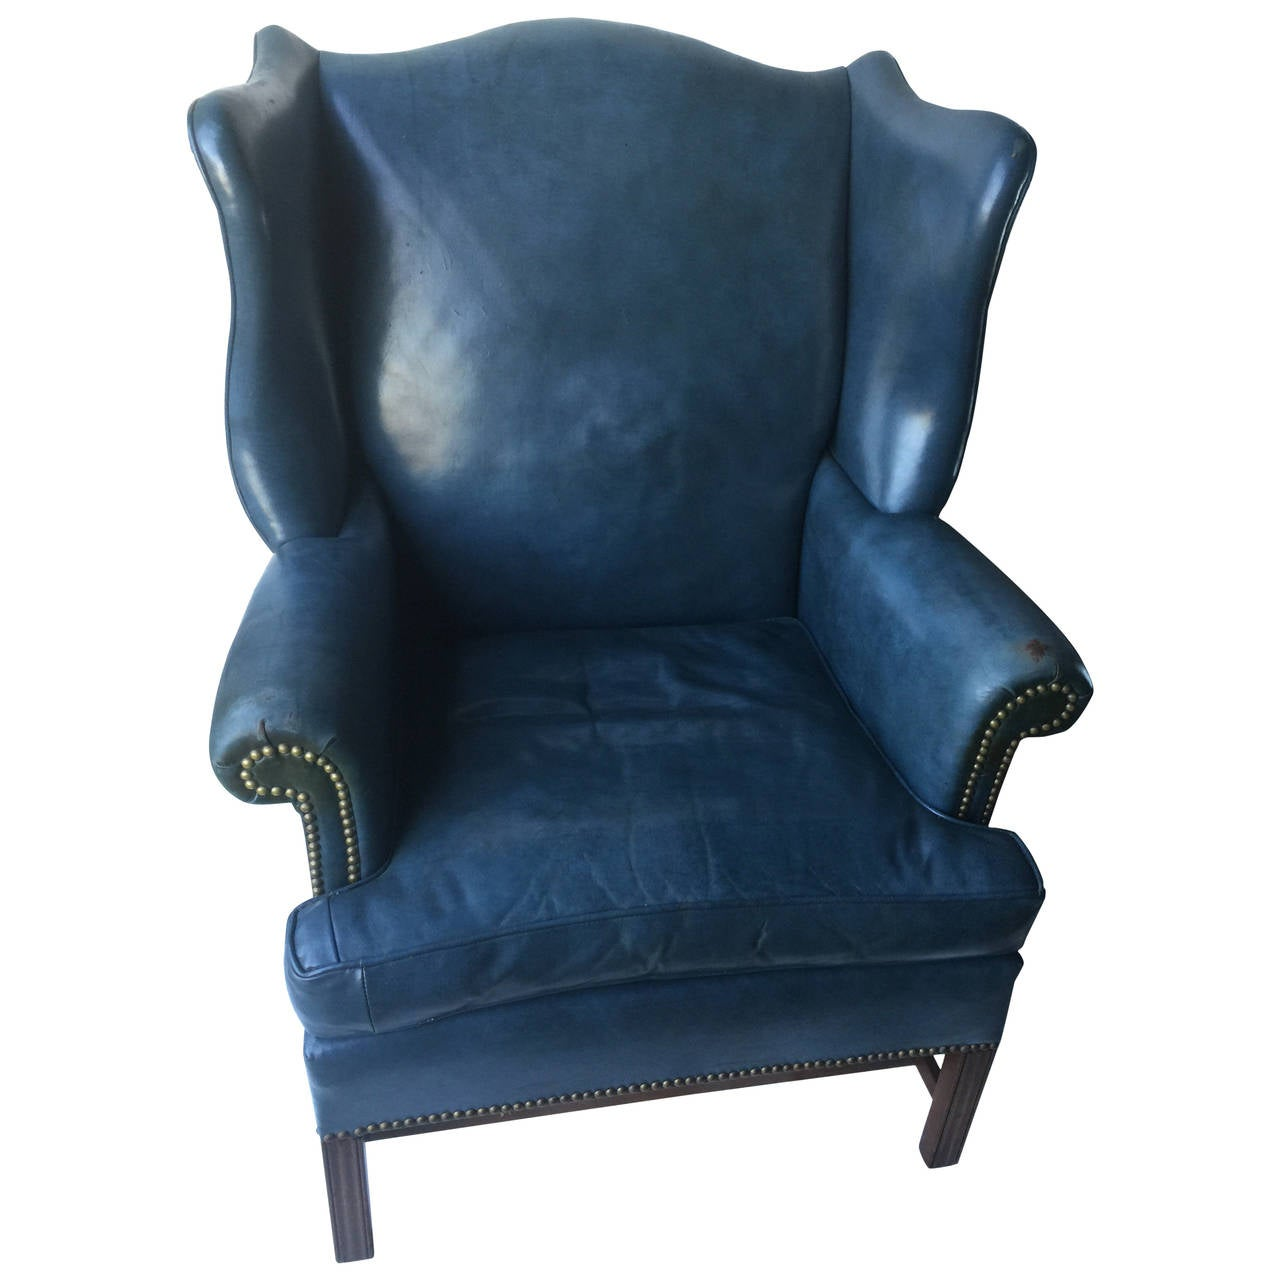 Blue Leather Club Chair Denim Blue Leather Wingback Chair And Ottoman At 1stdibs